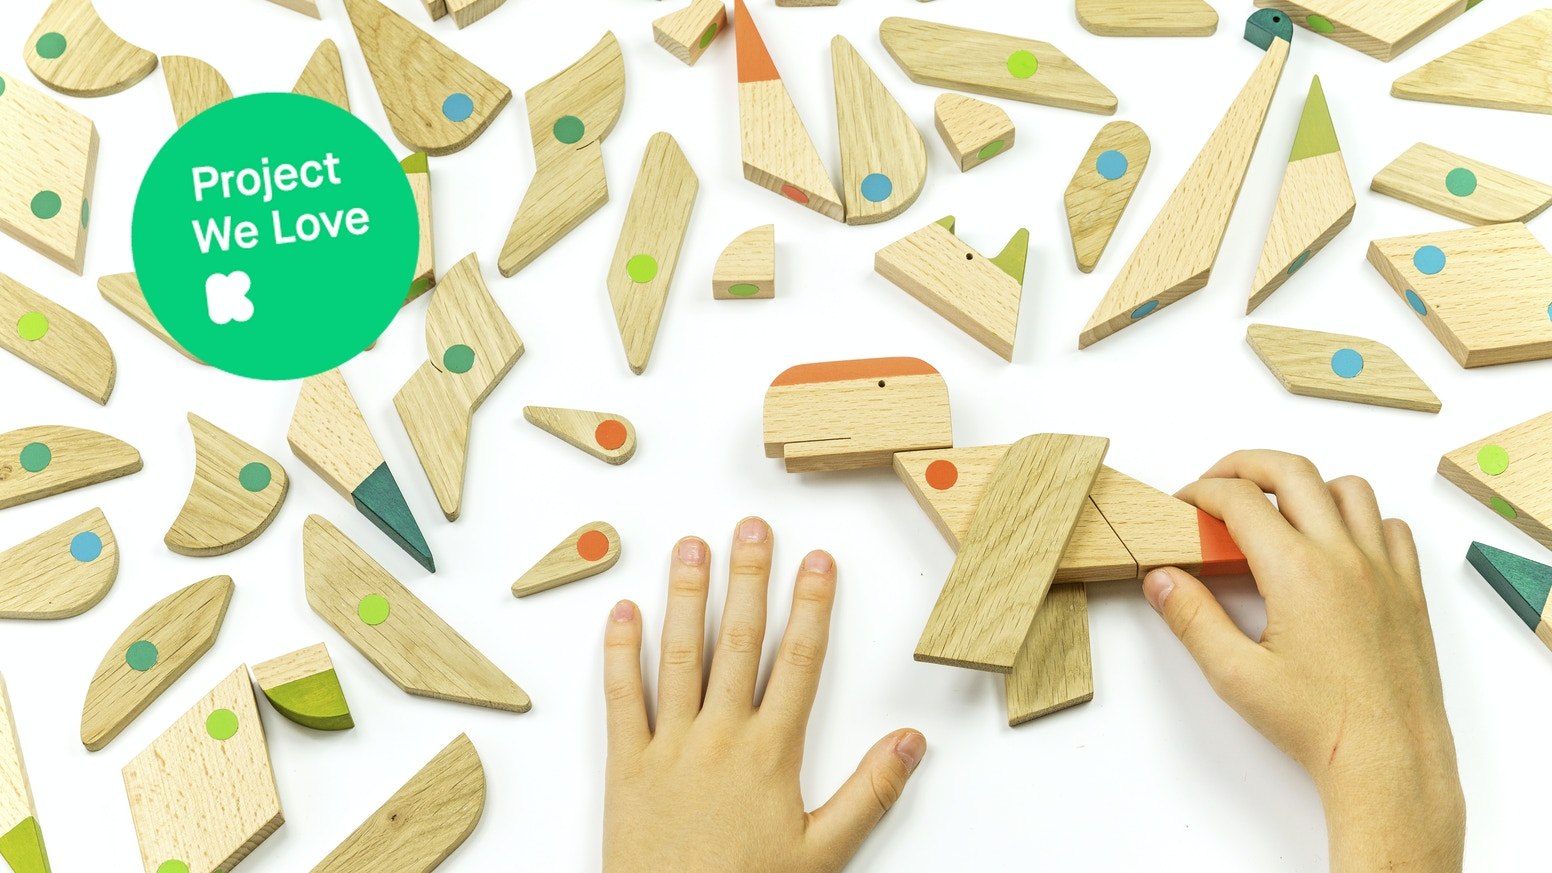 Playful way of learning about animals. Toys that last through generations.